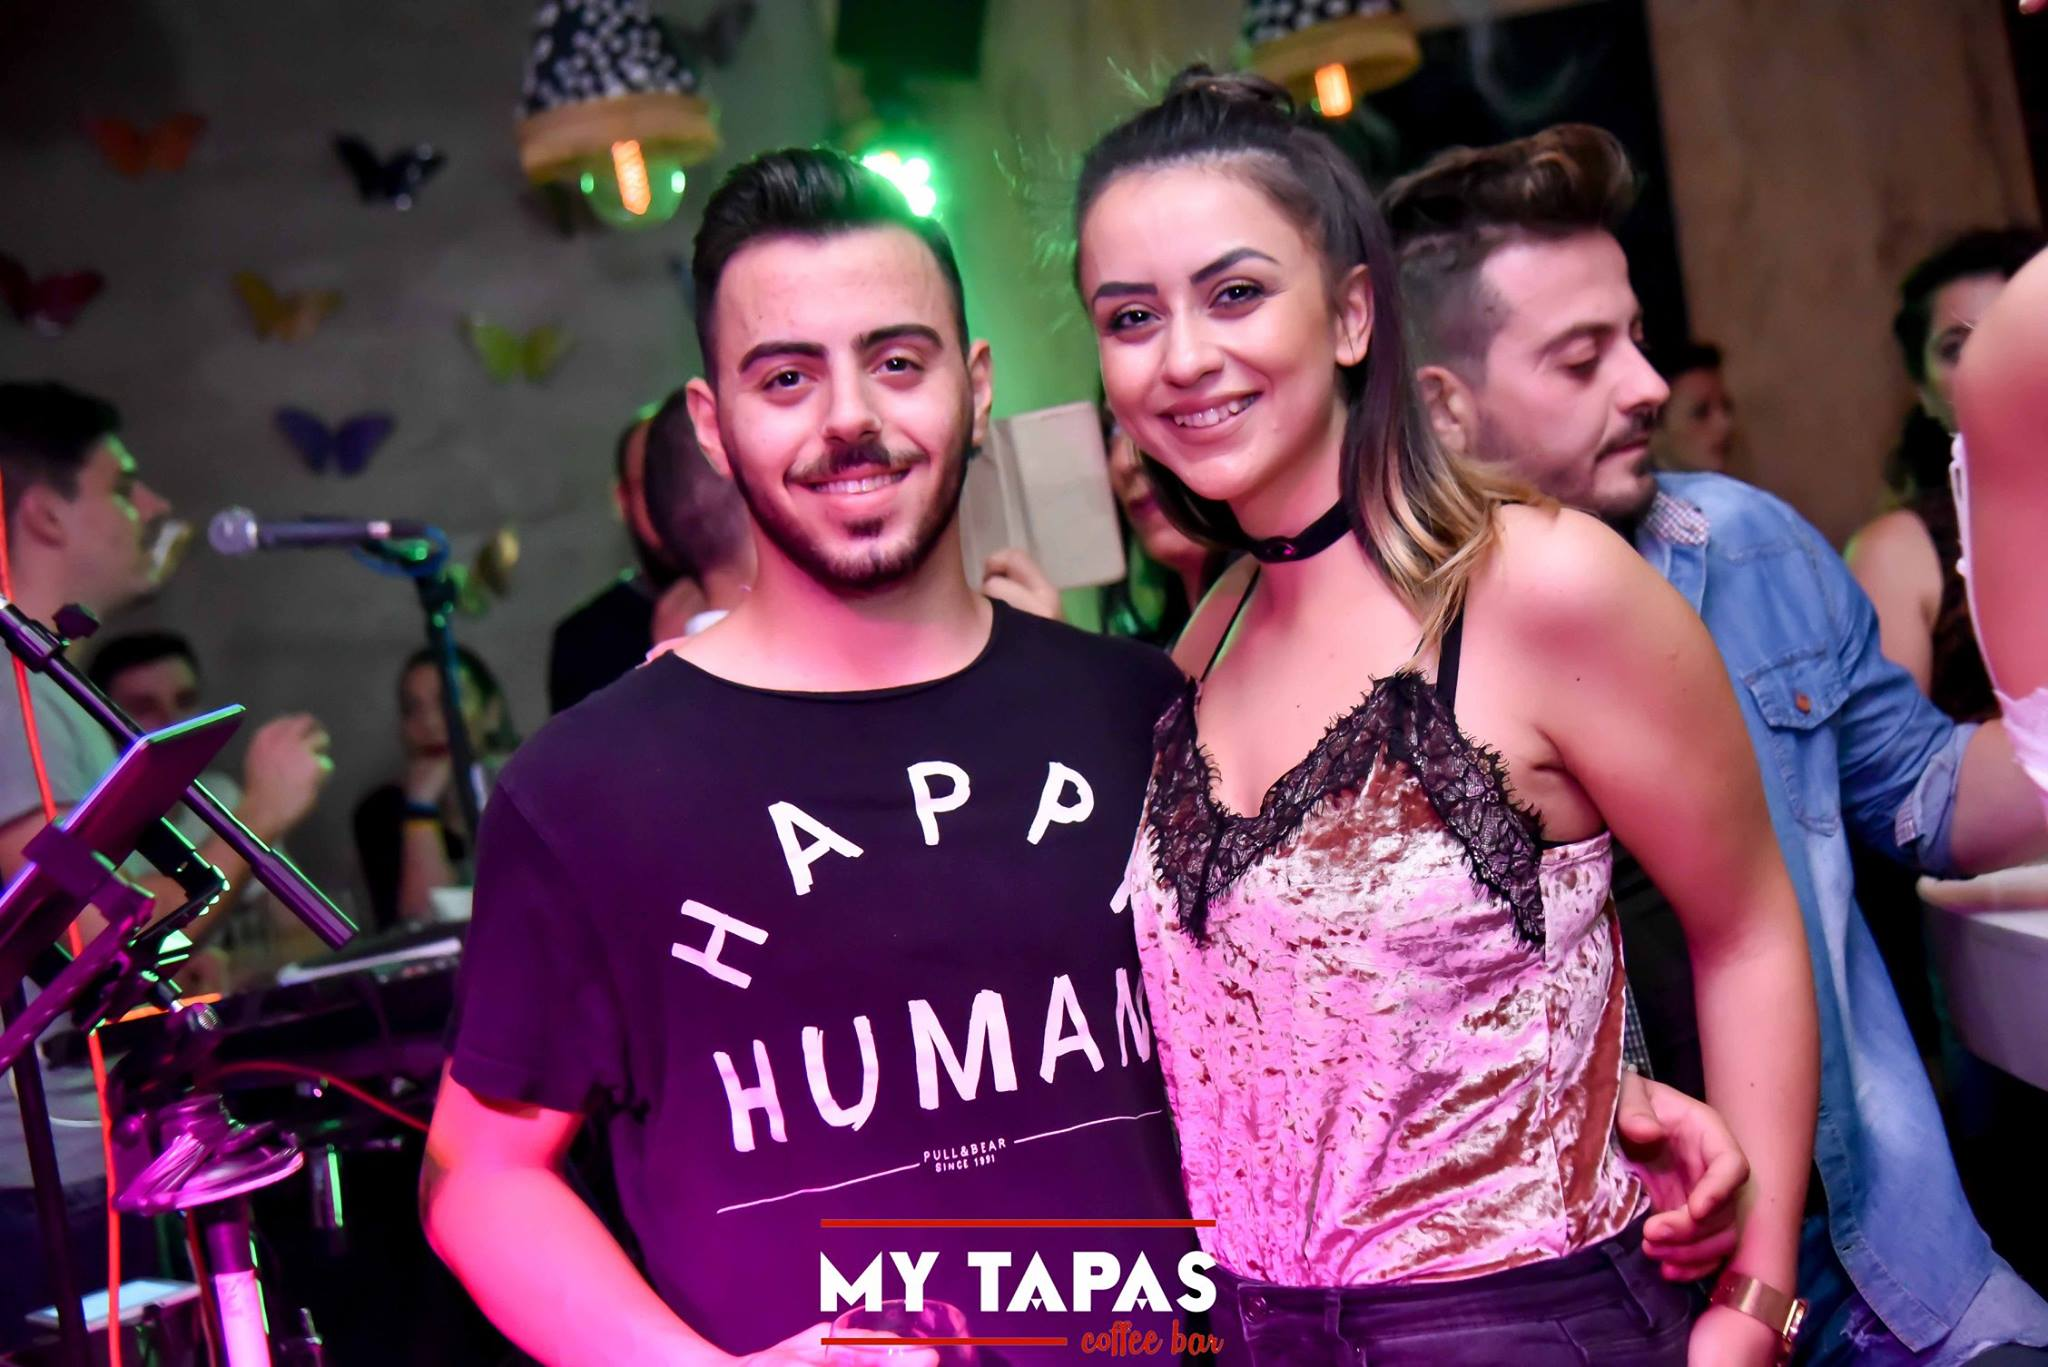 39. 22548614 1576370532383154 187574132116347496 o 1 - My Live Tuesdays στο MY Tapas Coffee bar | Τρίτη 17.10 Part 1/2